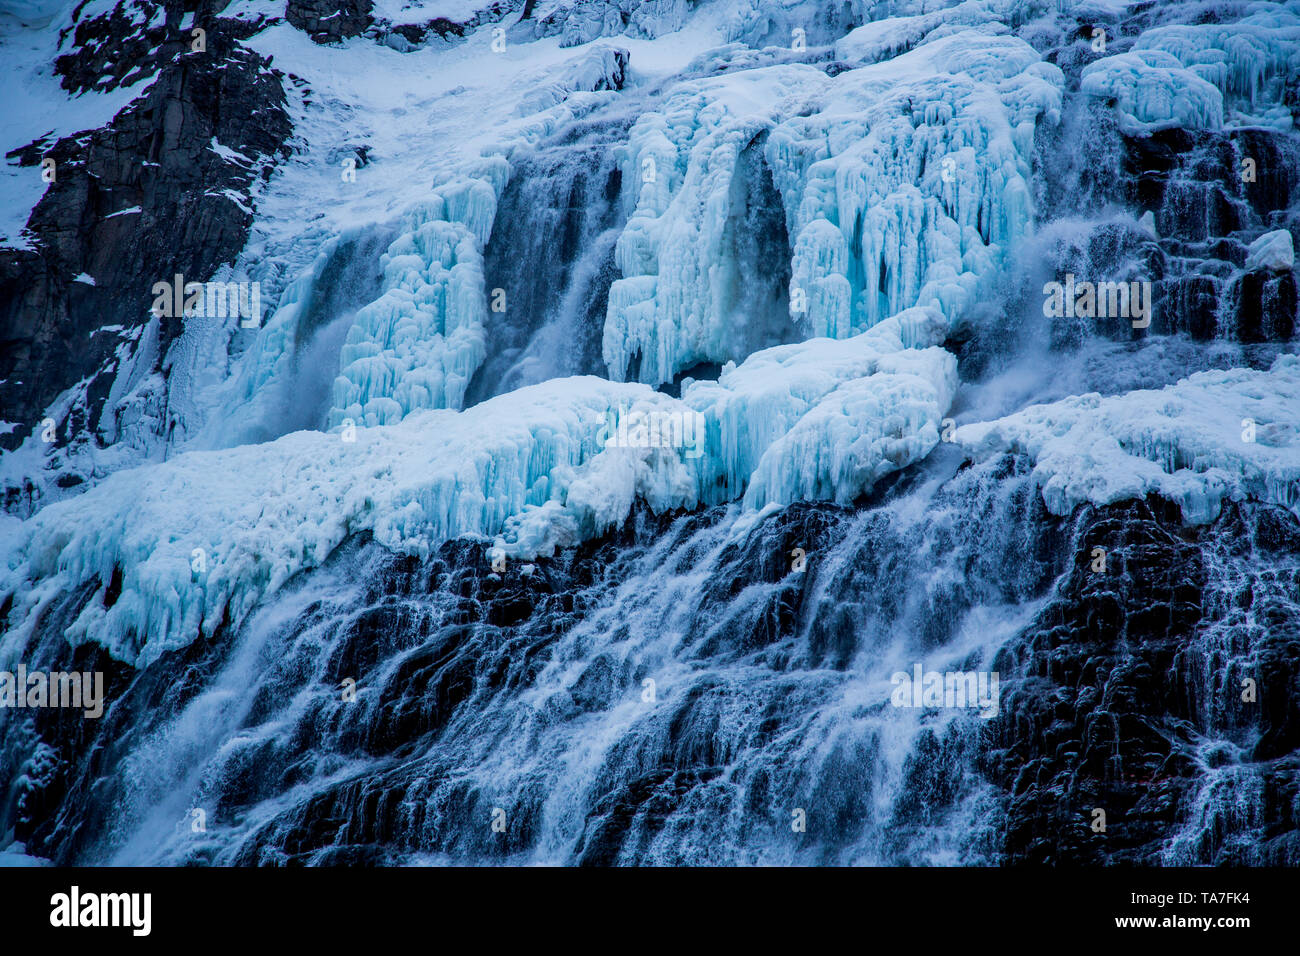 Dynjandi waterfall in winter with frozen water and fog effect - Stock Image